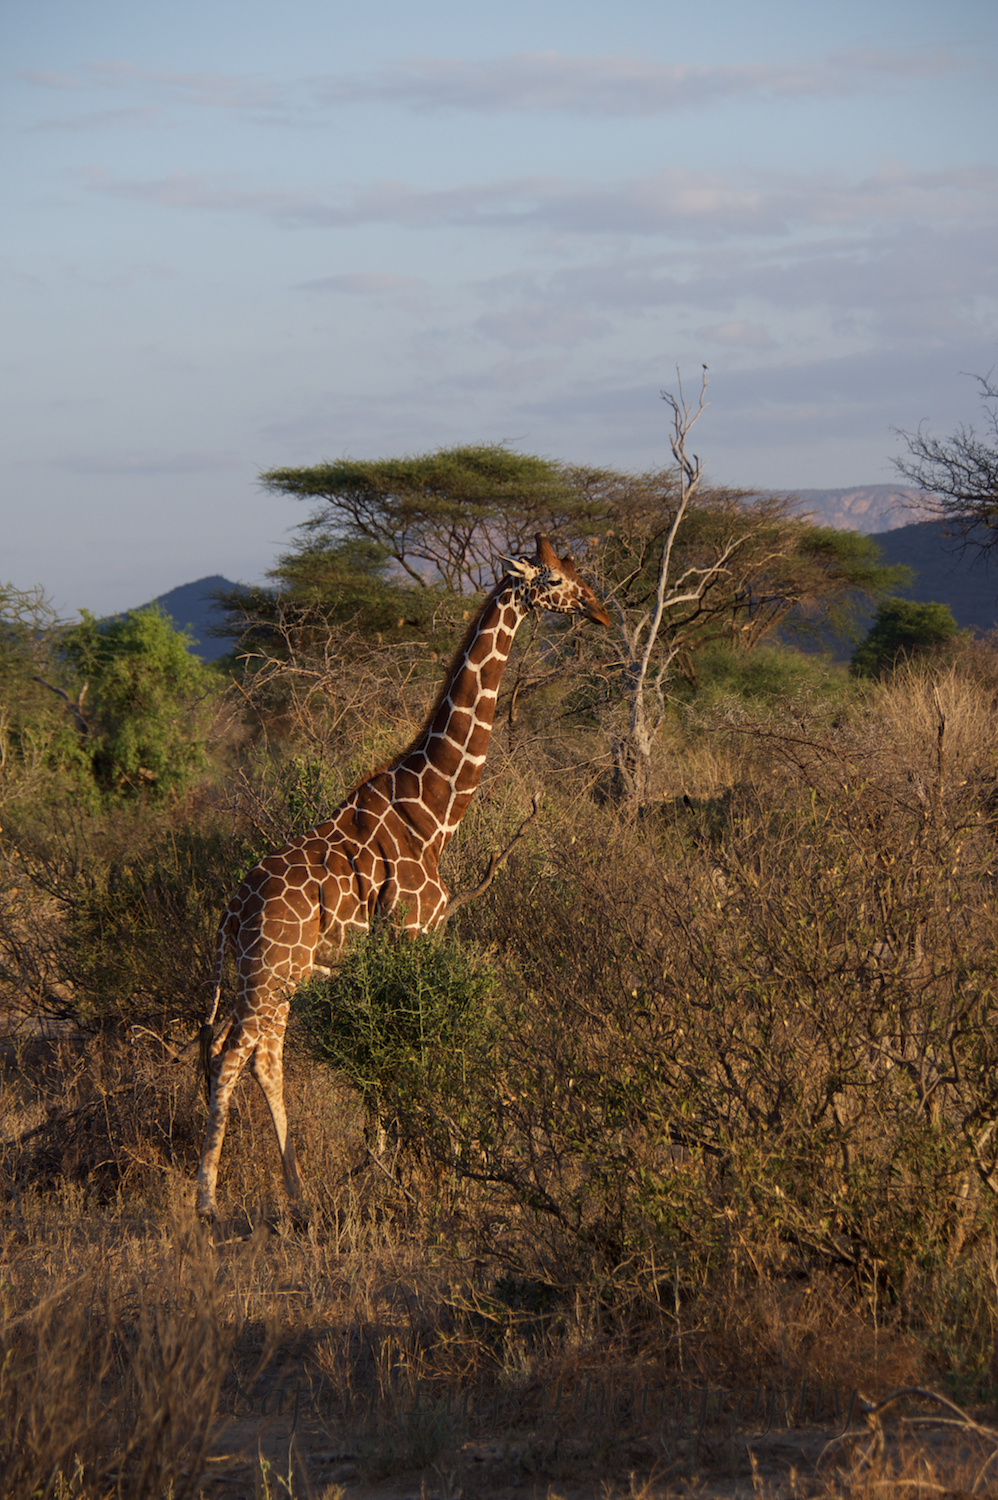 The reticulated giraffe found in northern Kenya.